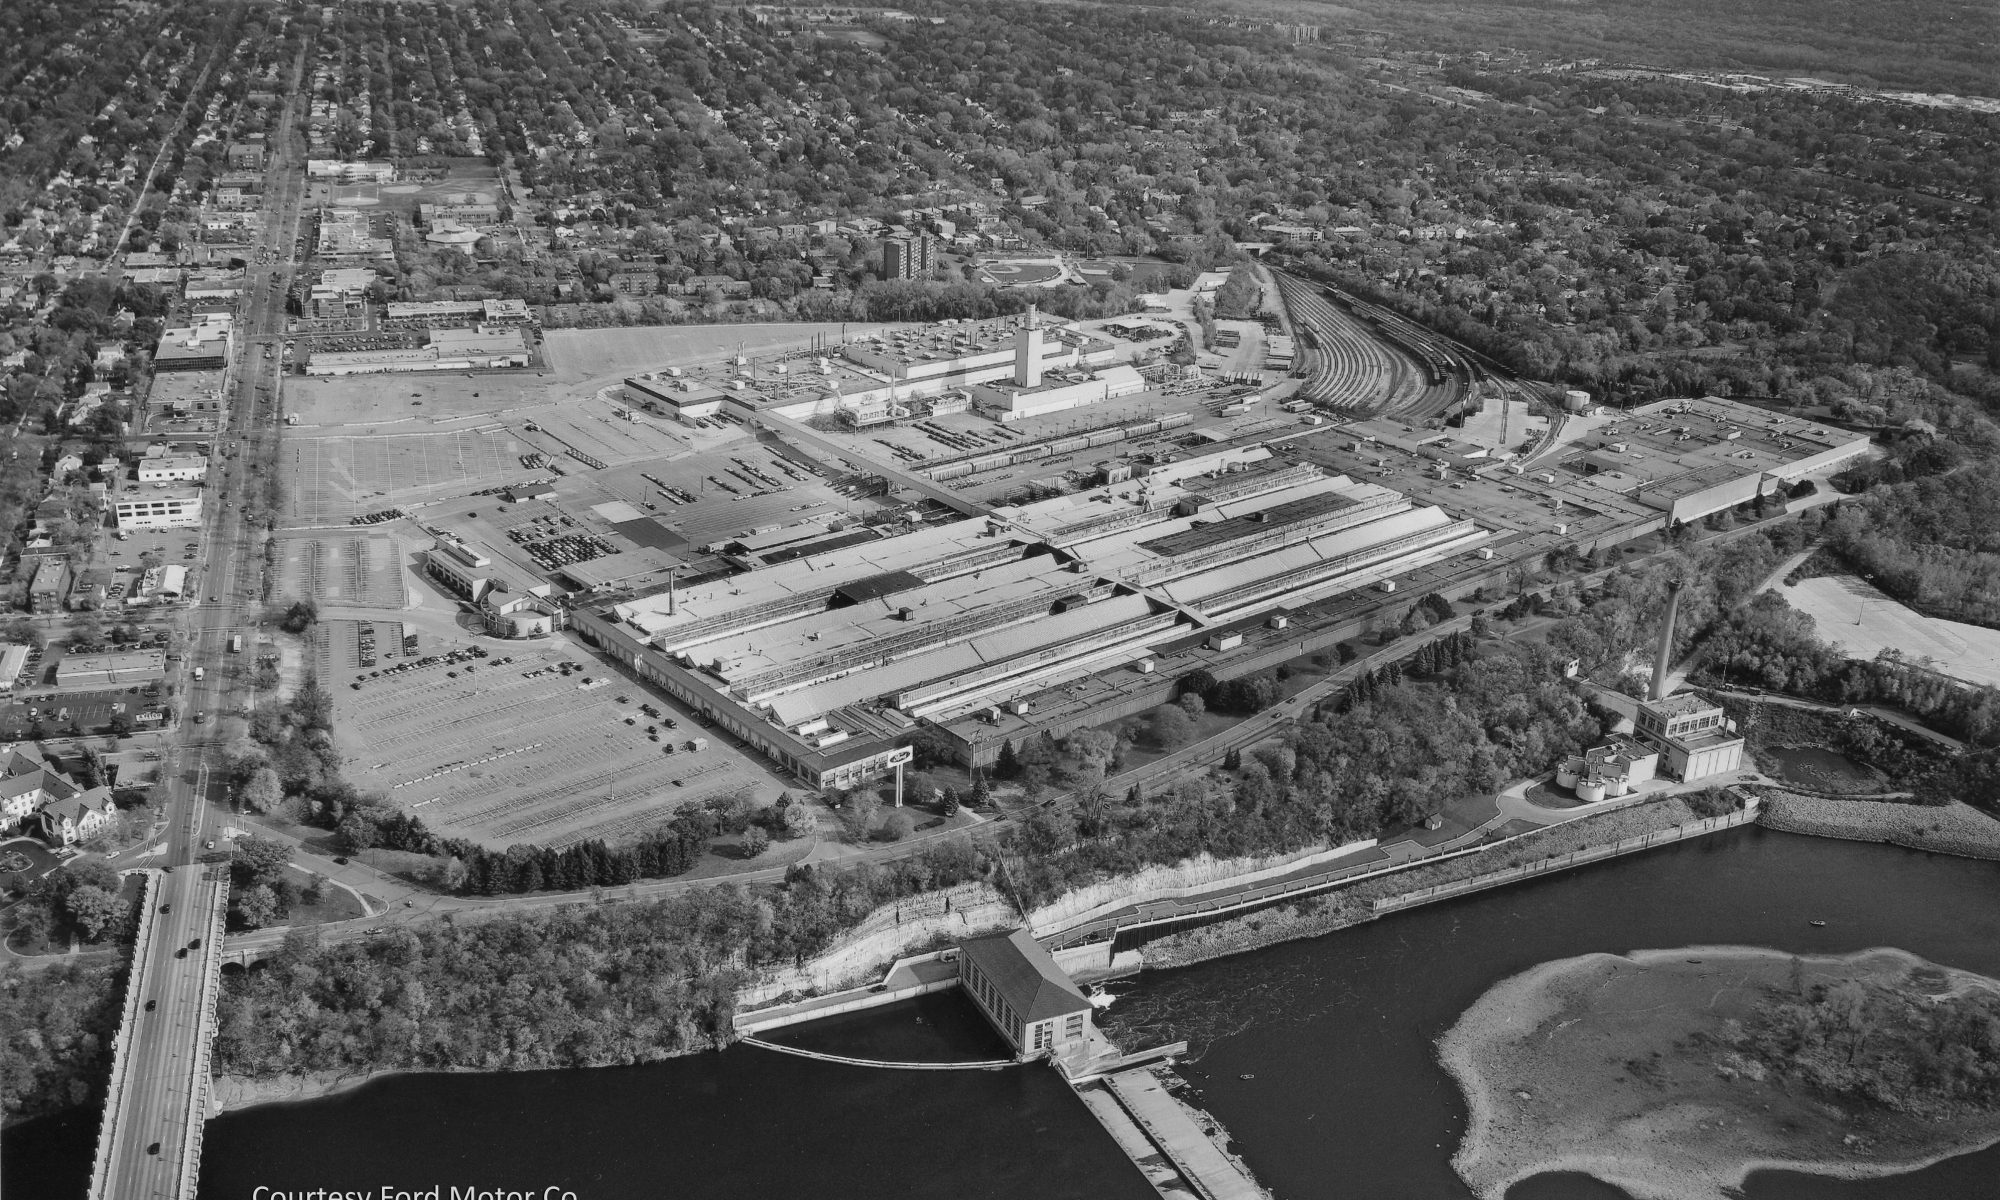 The Twin Cities Assembly Plant, pictured here around 2006, occupied 122 acres adjacent the Mississippi River in Saint Paul. The original plant site consisted of 200 acres, some of which was eventually sold to private developers for the shopping center and apartment buildings along the eastern edge of the property. However, Ford retained the mineral rights under the parcels that had been sold. Courtesy Ford Motor Company